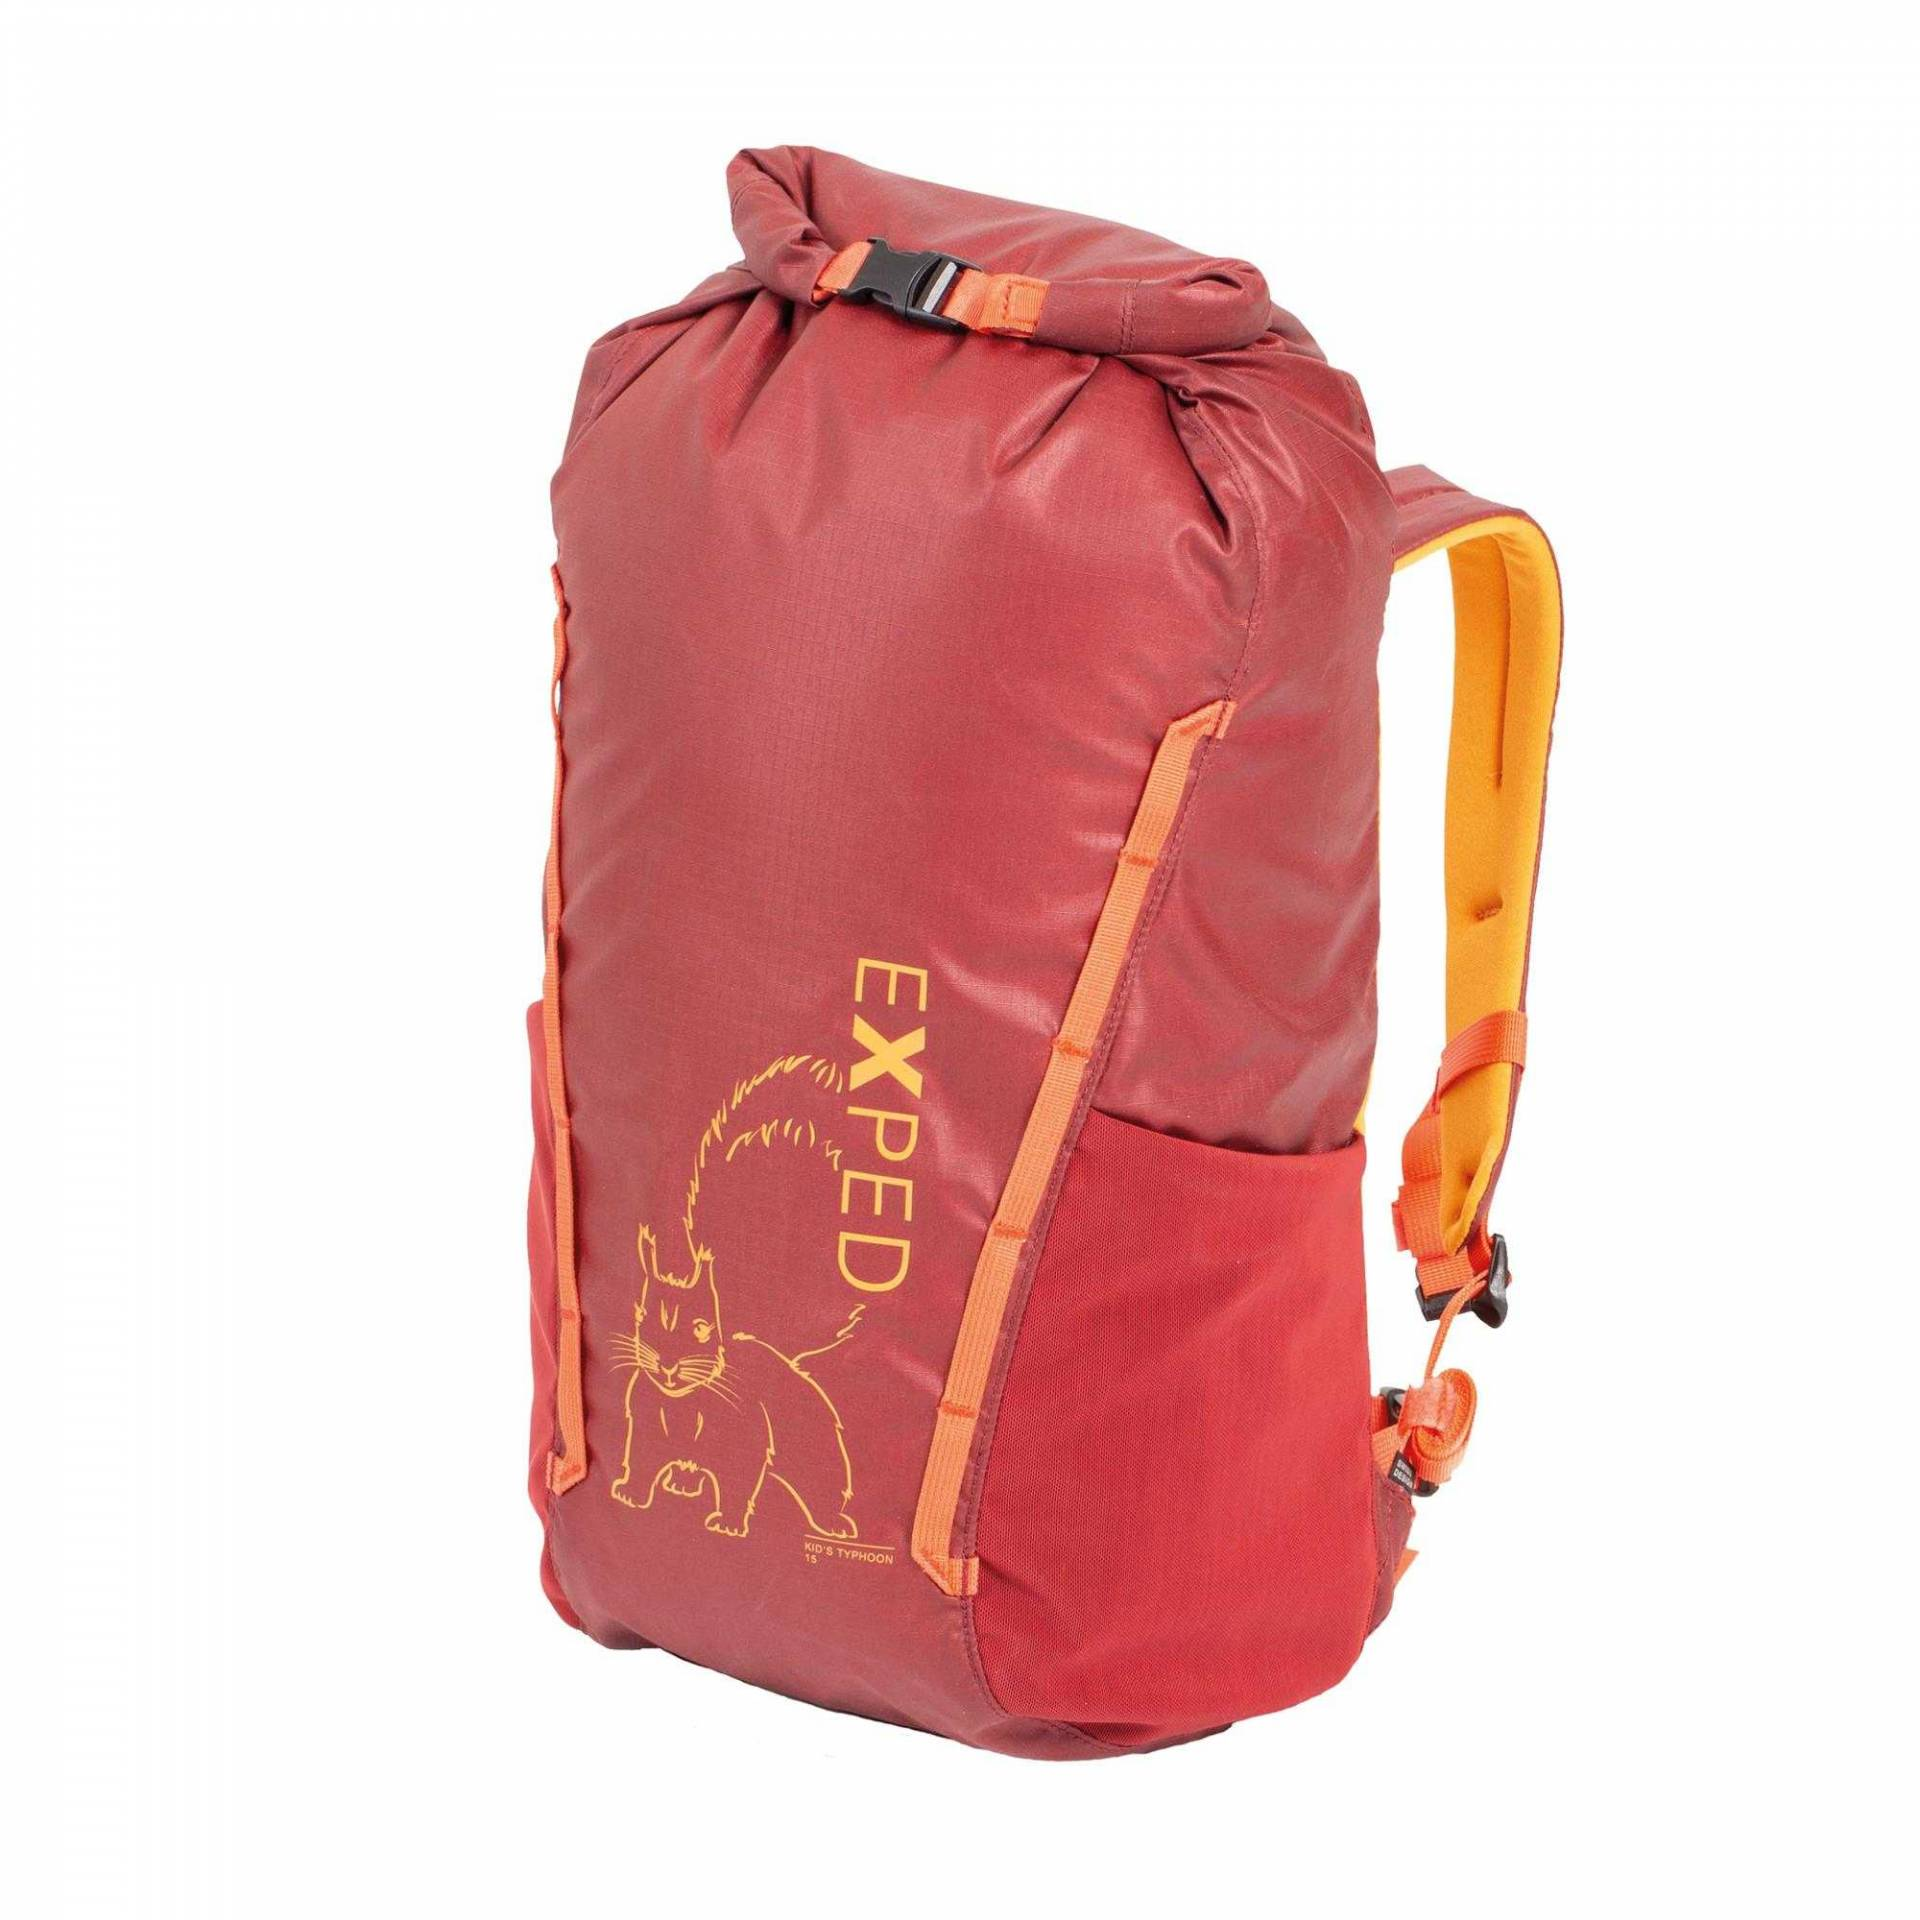 Exped Kid's Typhoon 15 burgundy Kinder-Wanderrucksack rot von Exped